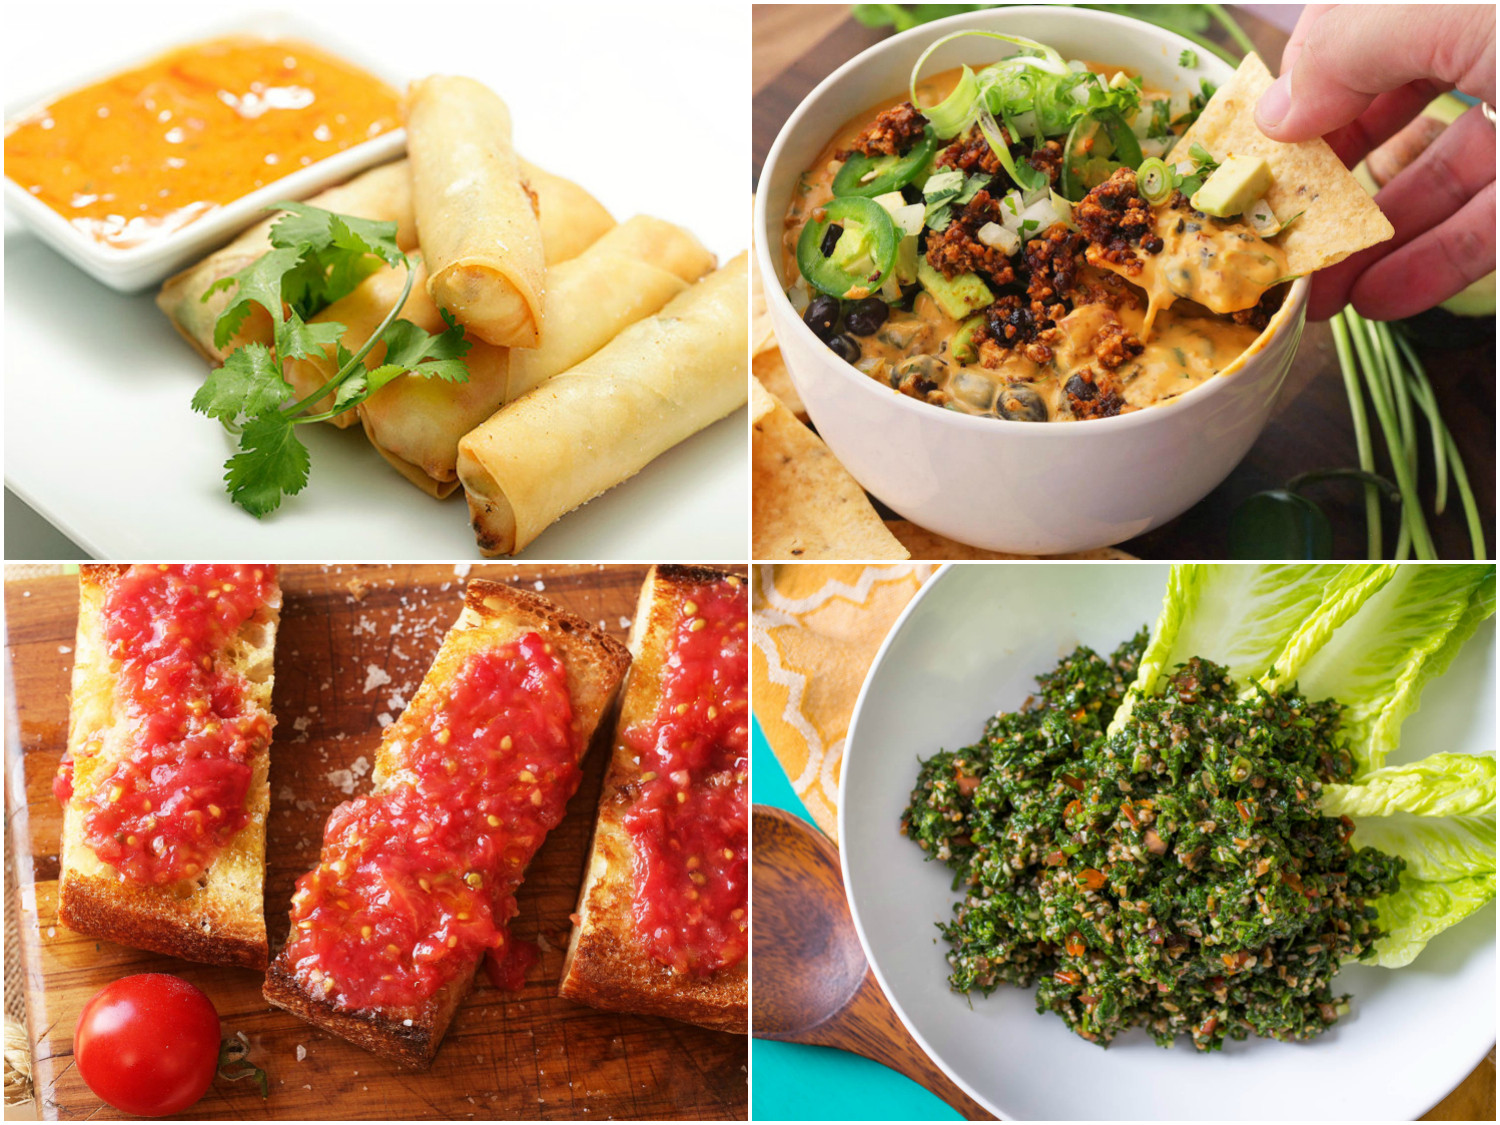 Healthy Vegetarian Snacks  10 Vegan Snacks to Satisfy Every Craving – Vegan Enthusiasts